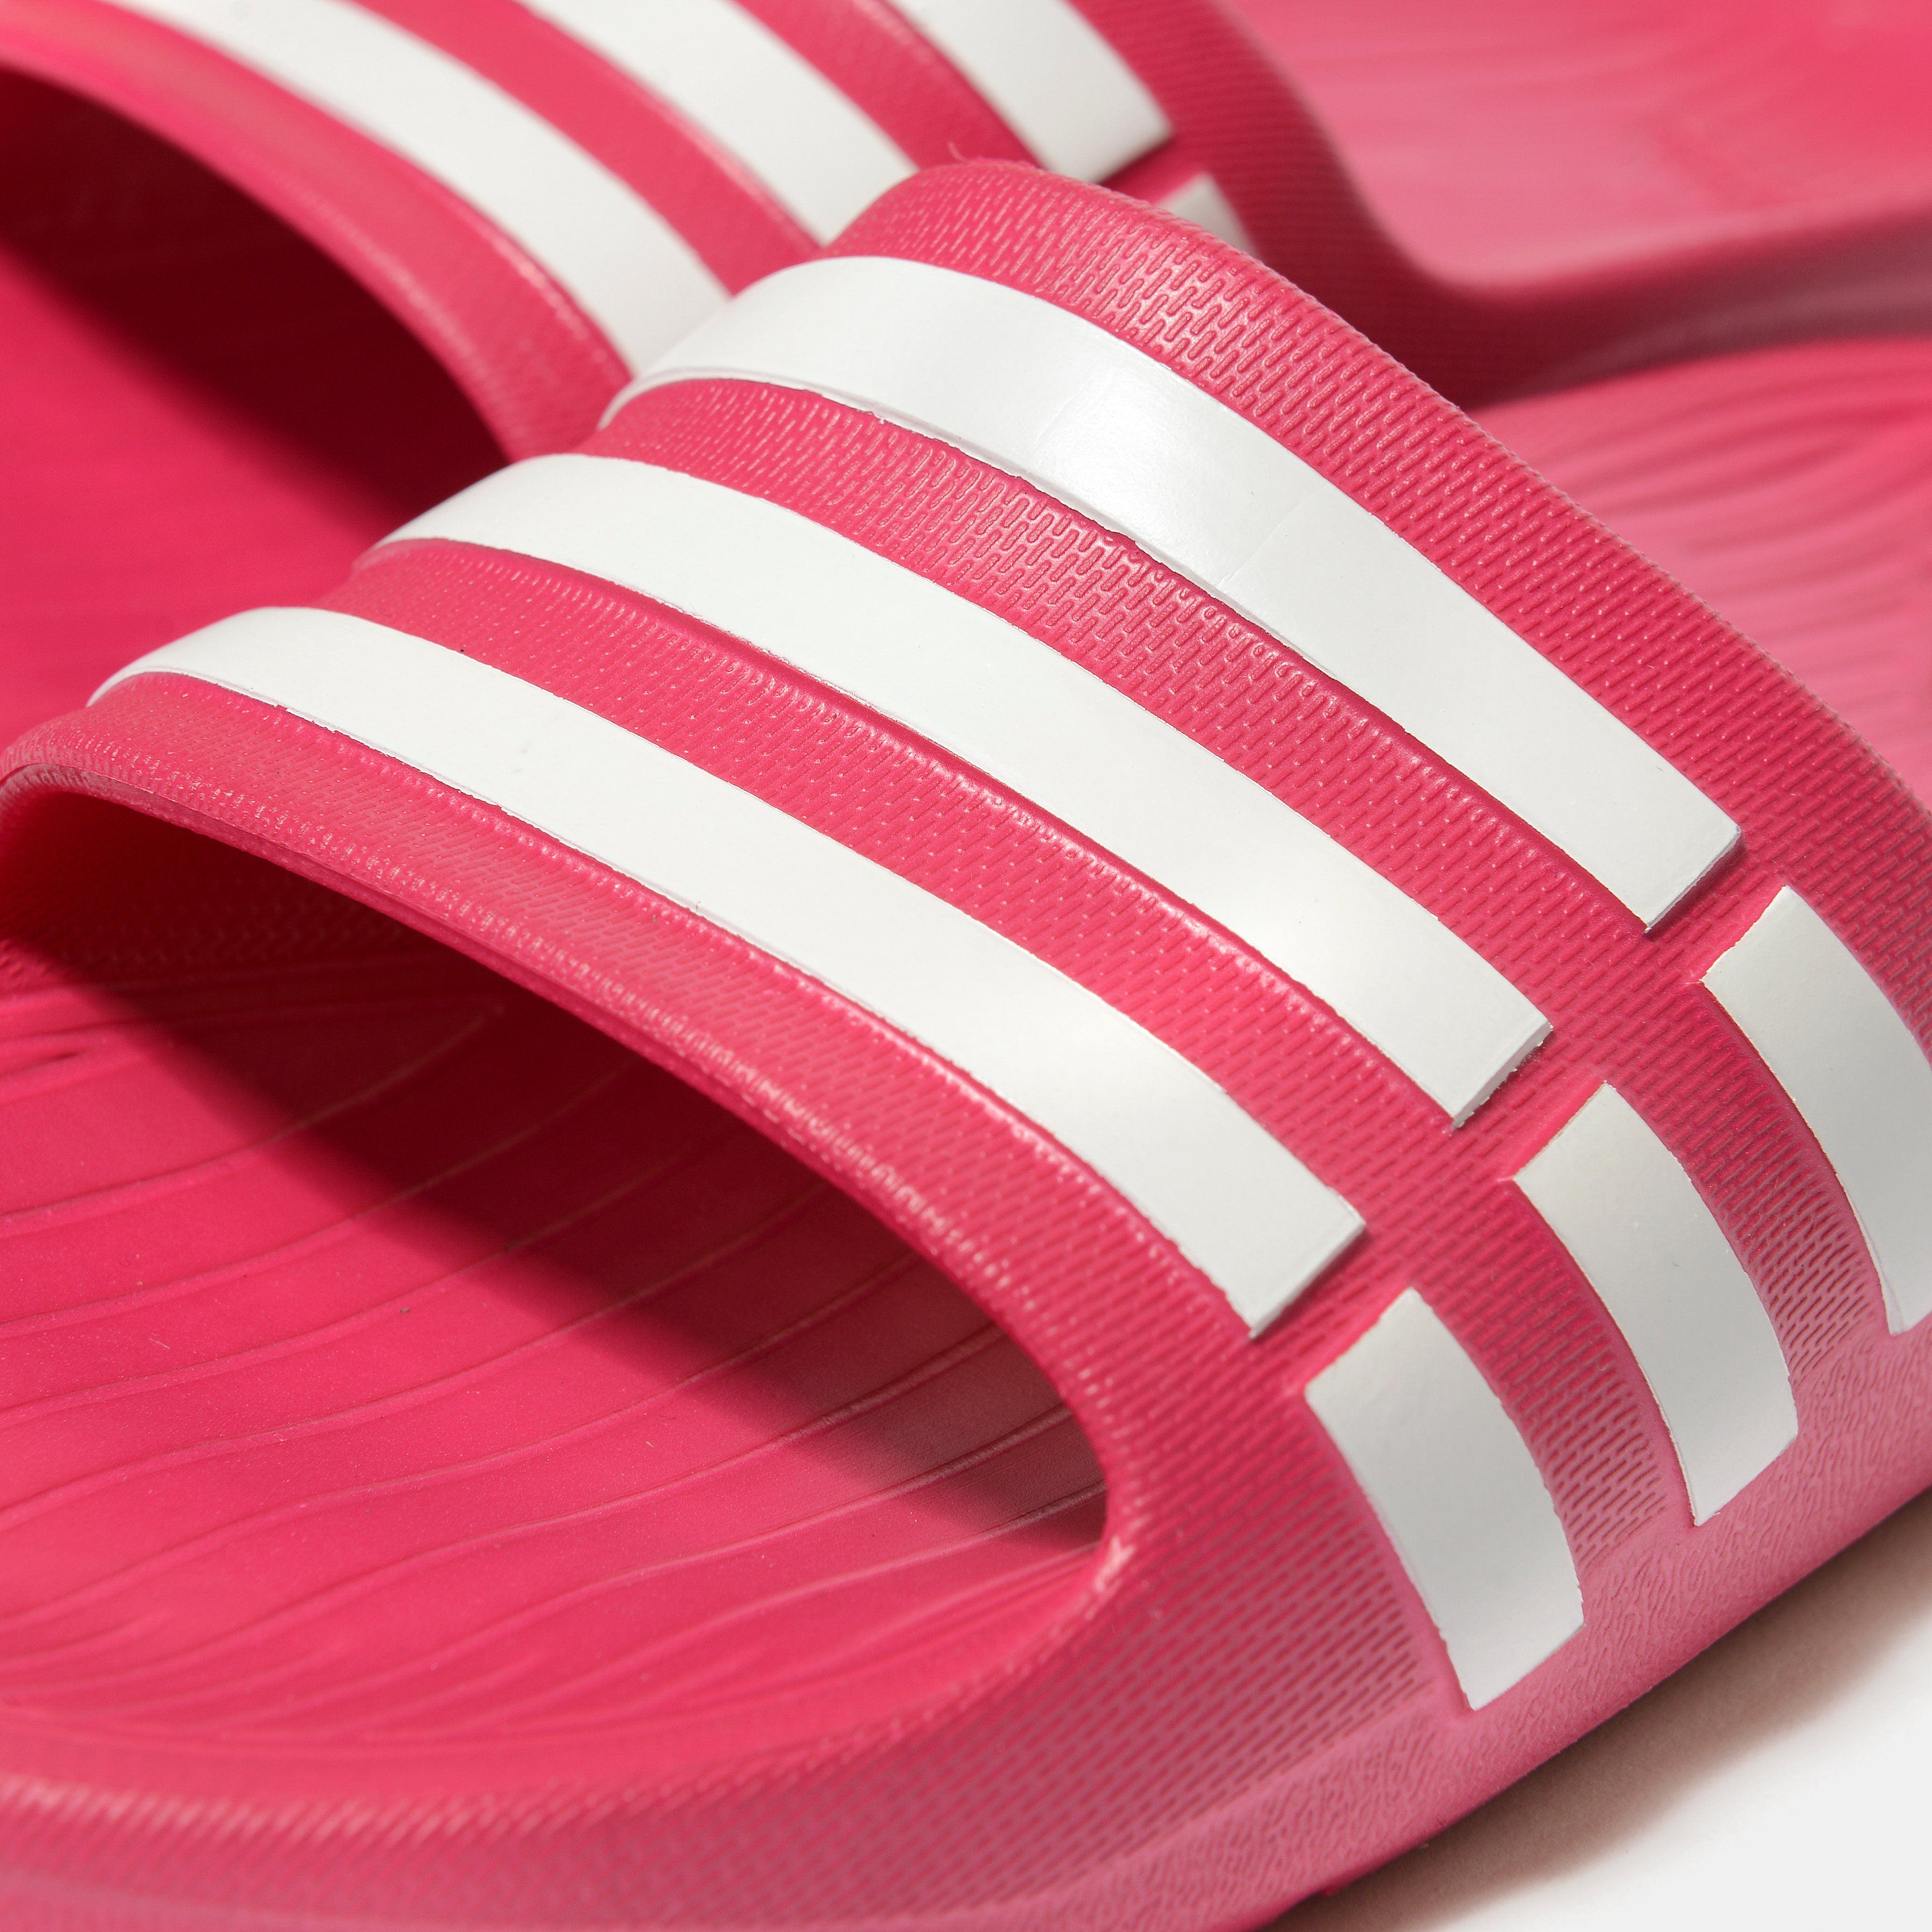 adidas Duramo Junior Slide Sandals